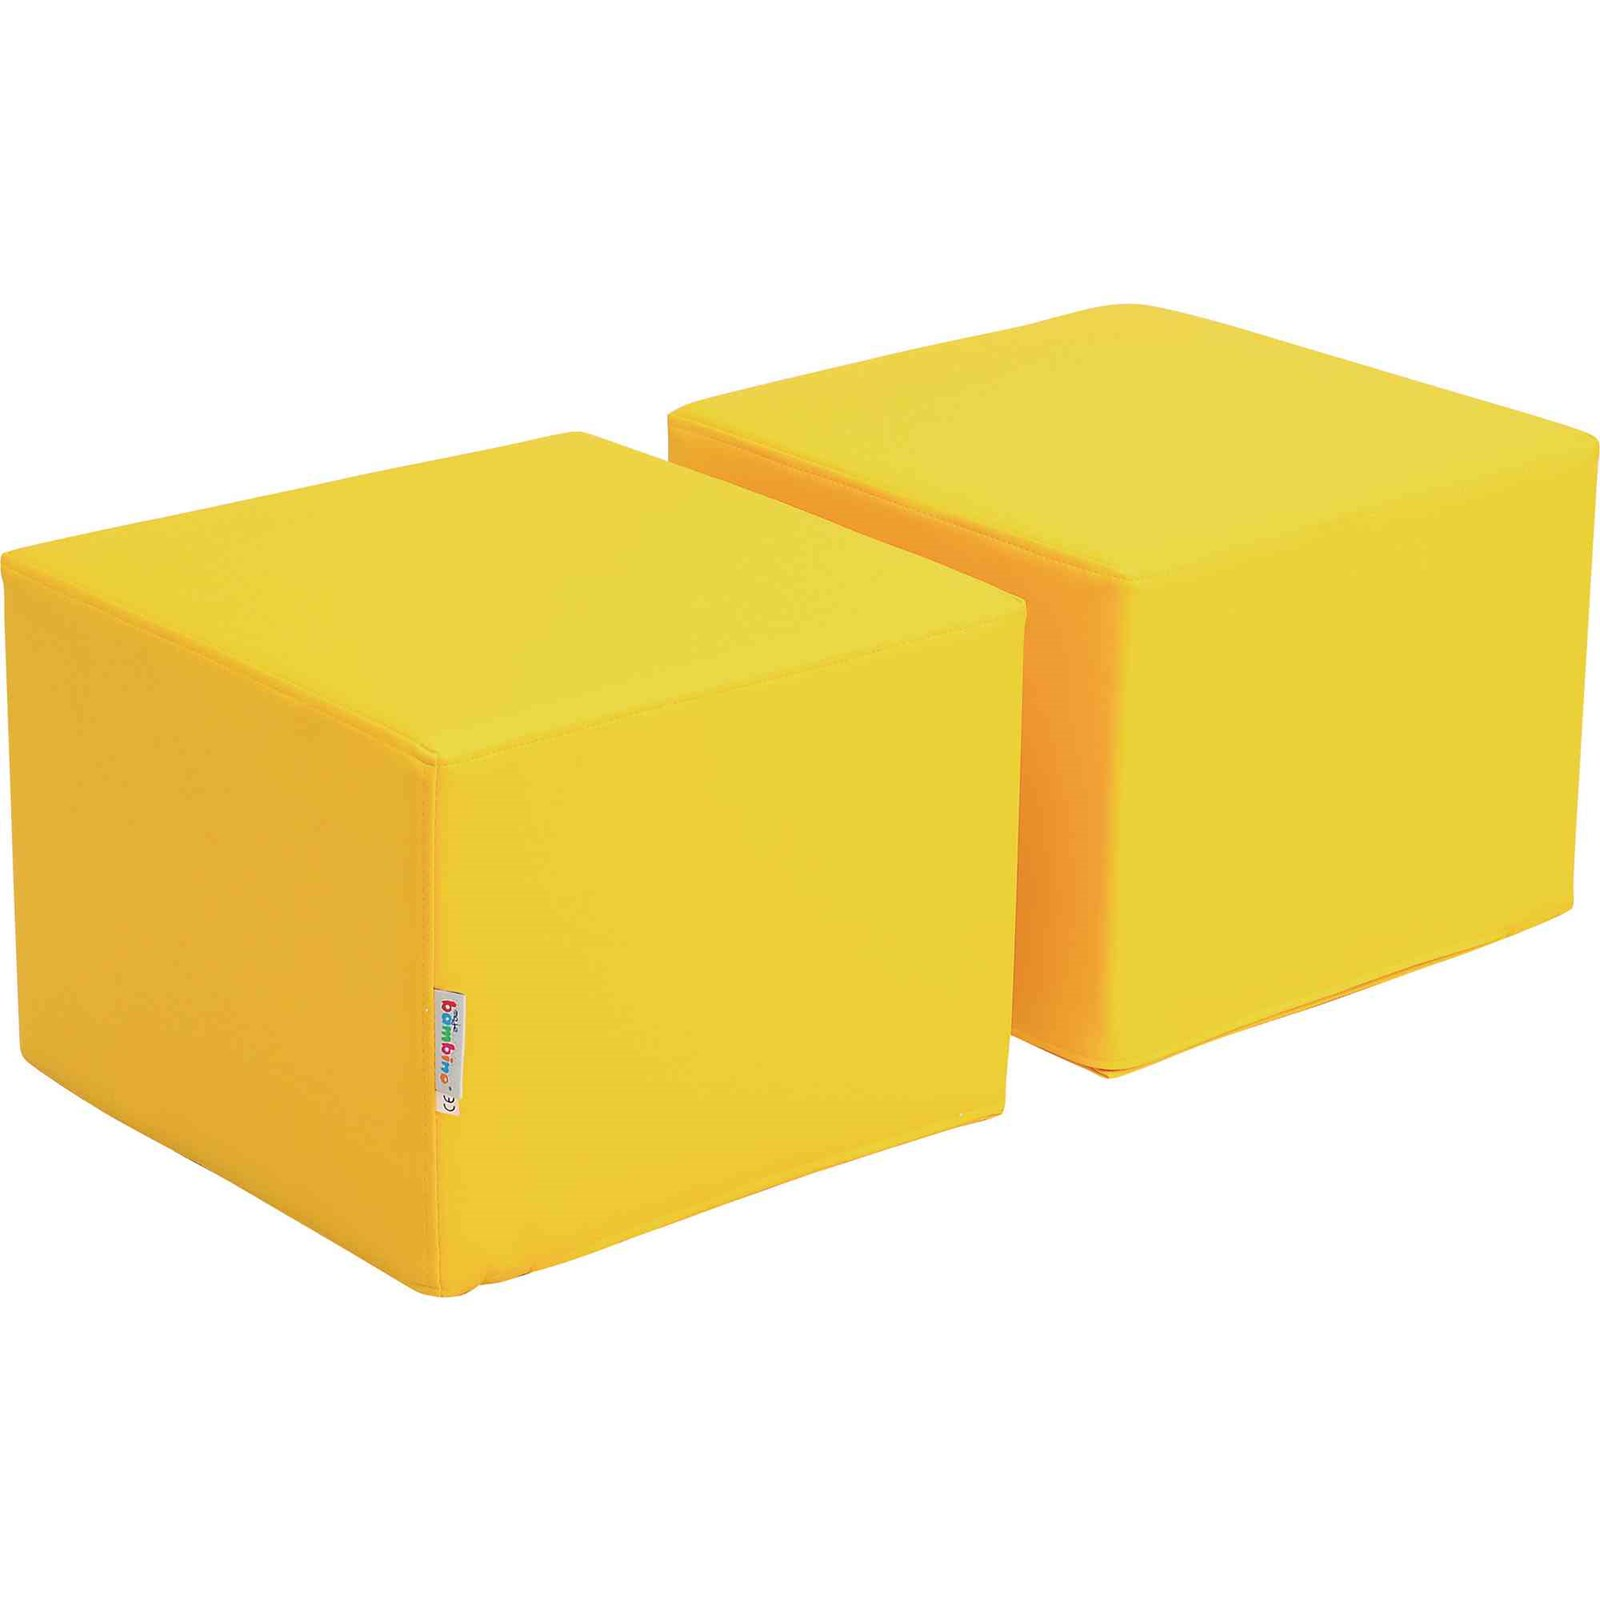 Browser Seats - Yellow